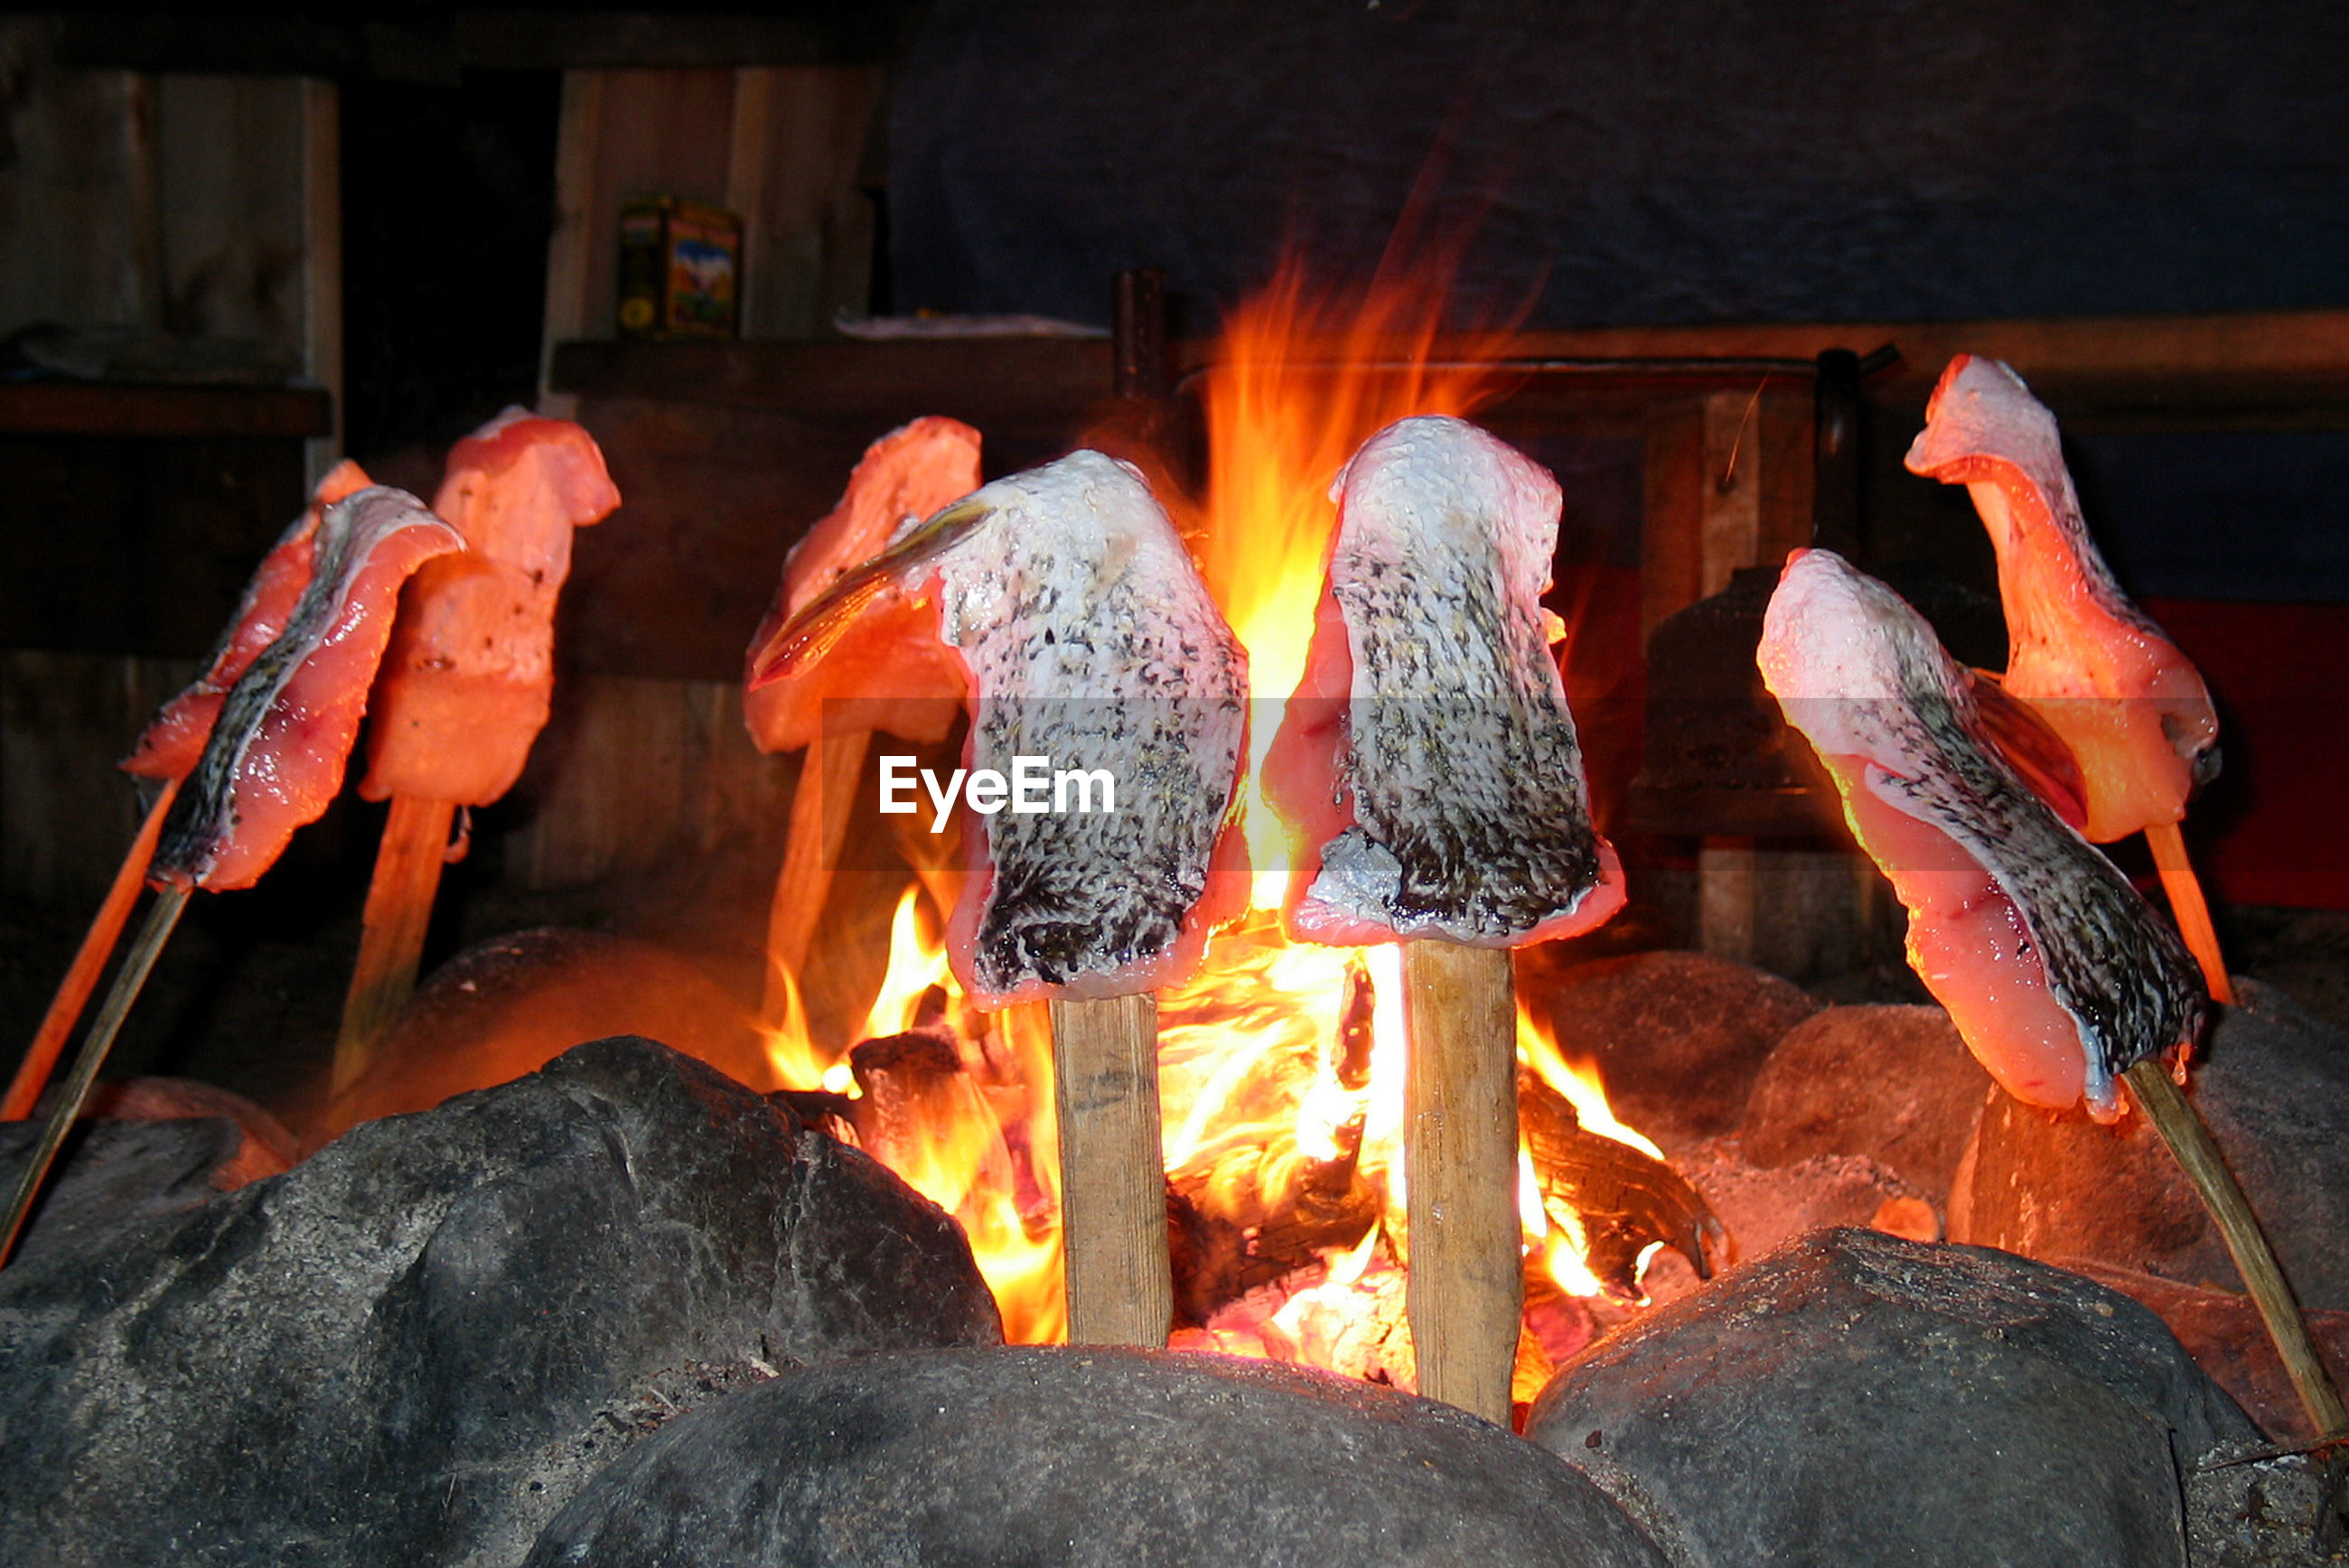 burning, flame, heat - temperature, outdoors, food, night, no people